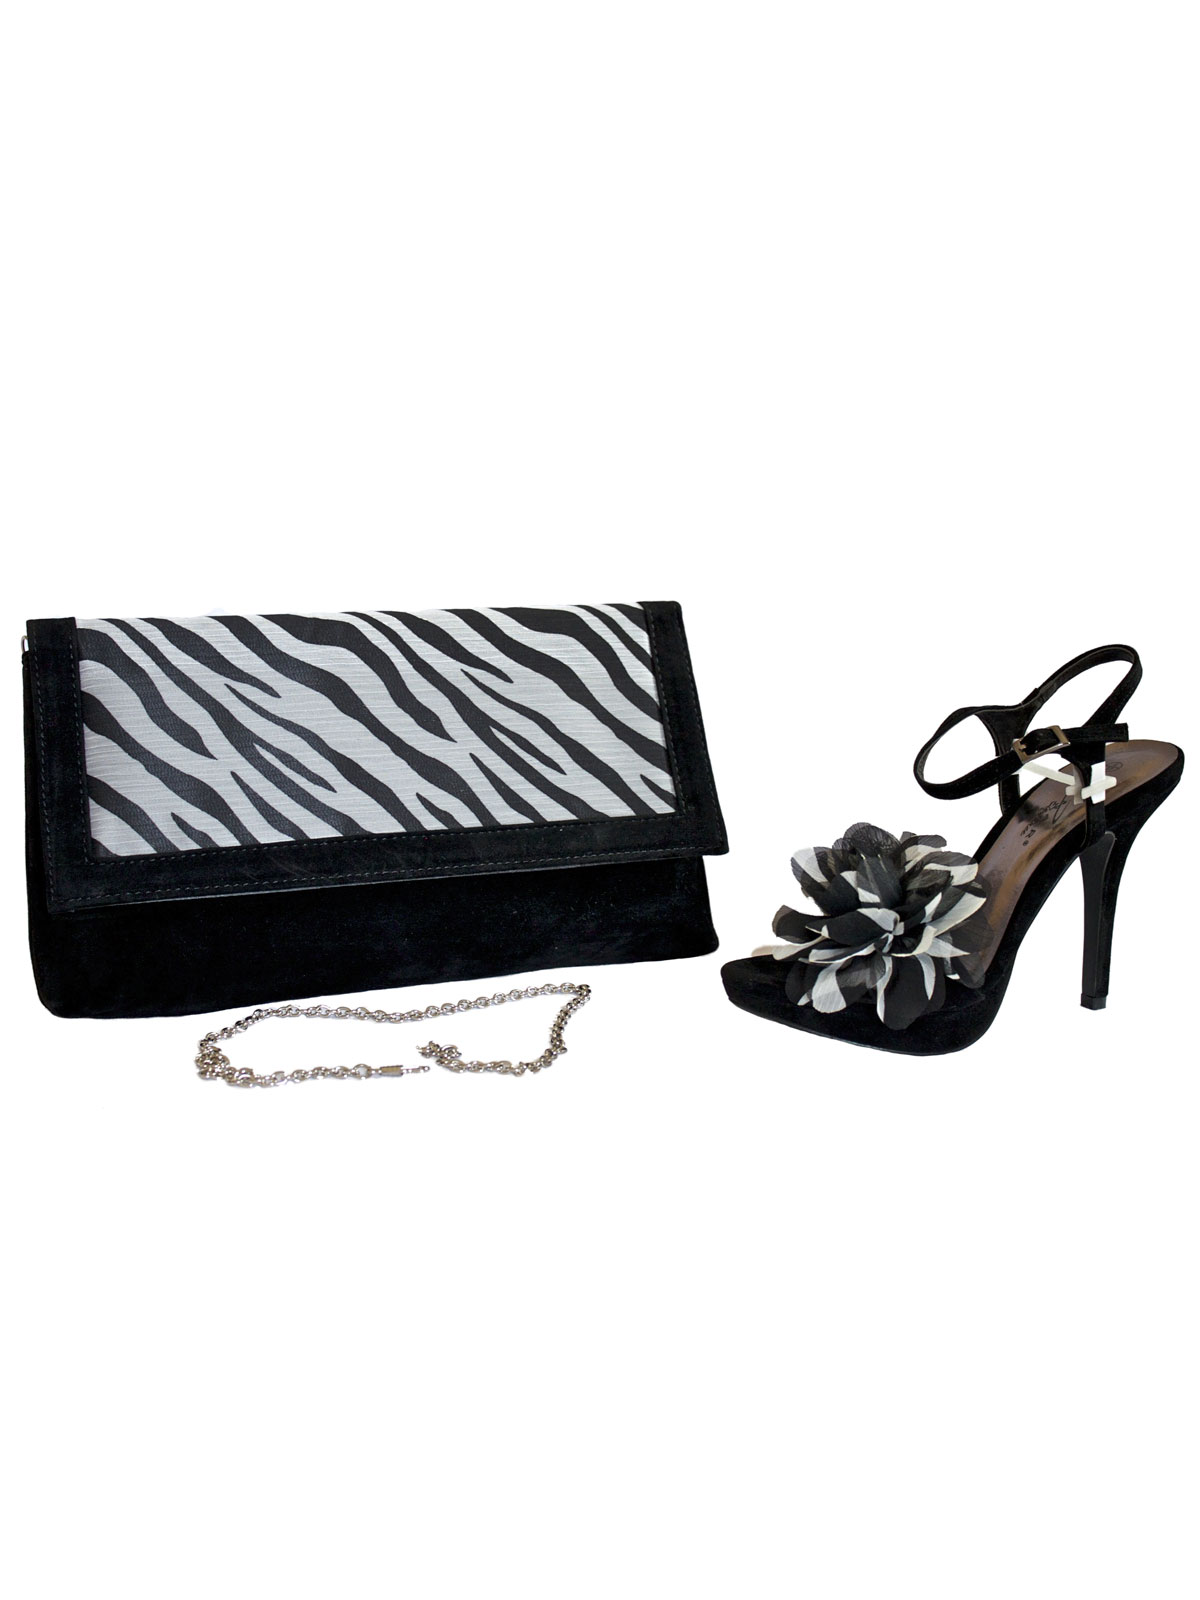 Lunar Black White Stiletto Slingbacks and Bag